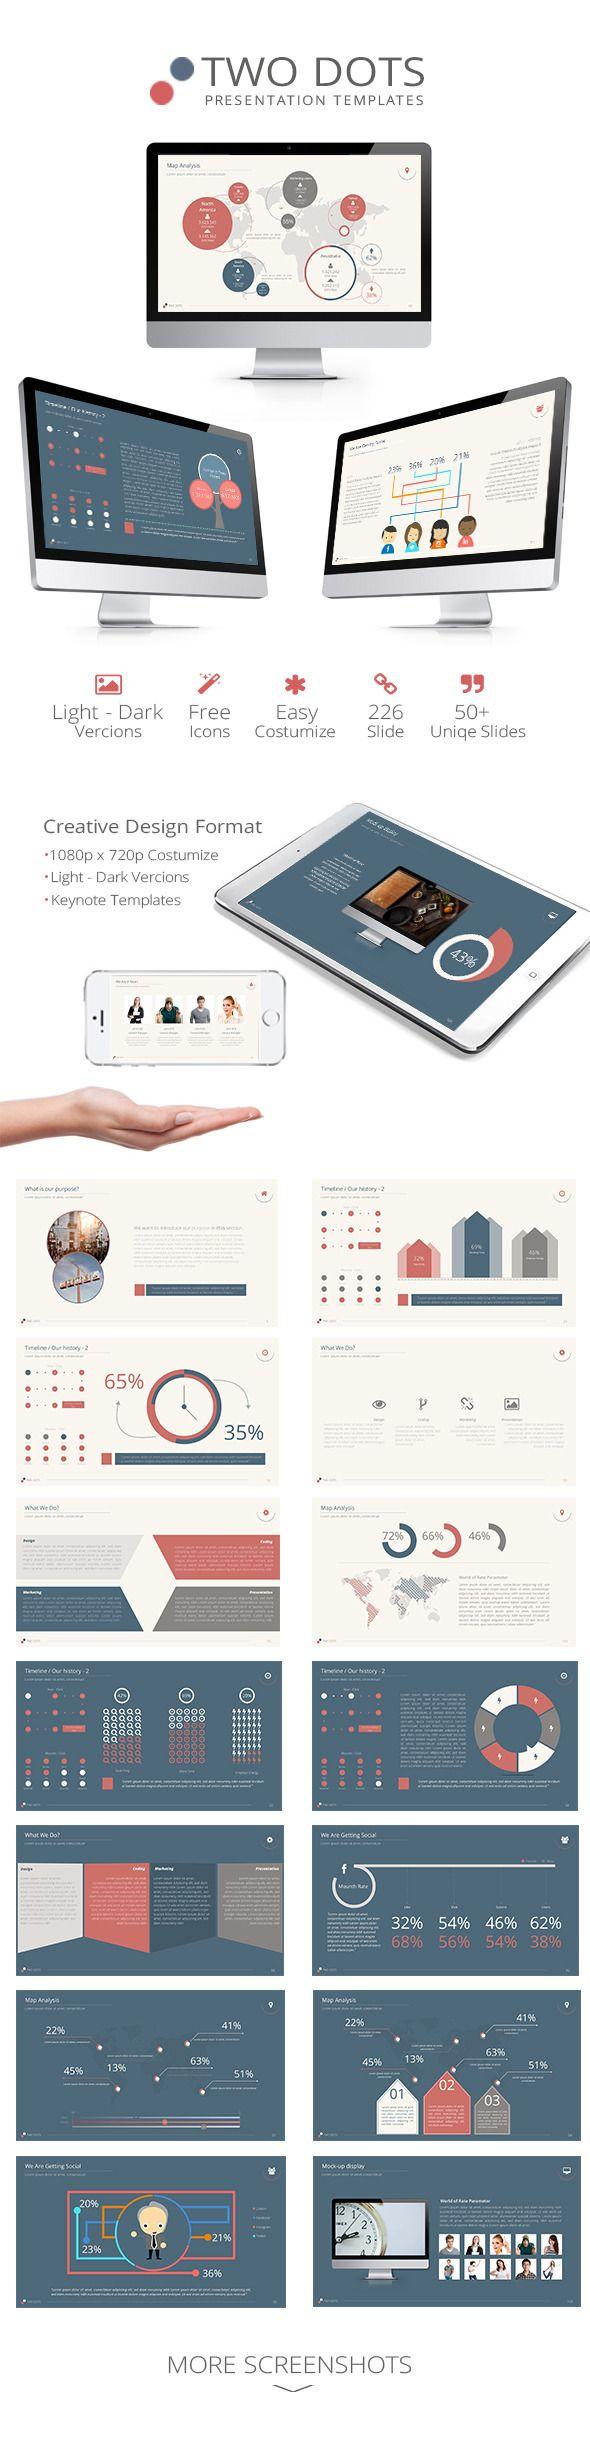 Two Dots Keynote Presentation Template | Buy and Download: http://graphicriver.net/item/two-dots-keynote-presentation-templates/9532803?ref=ksioks